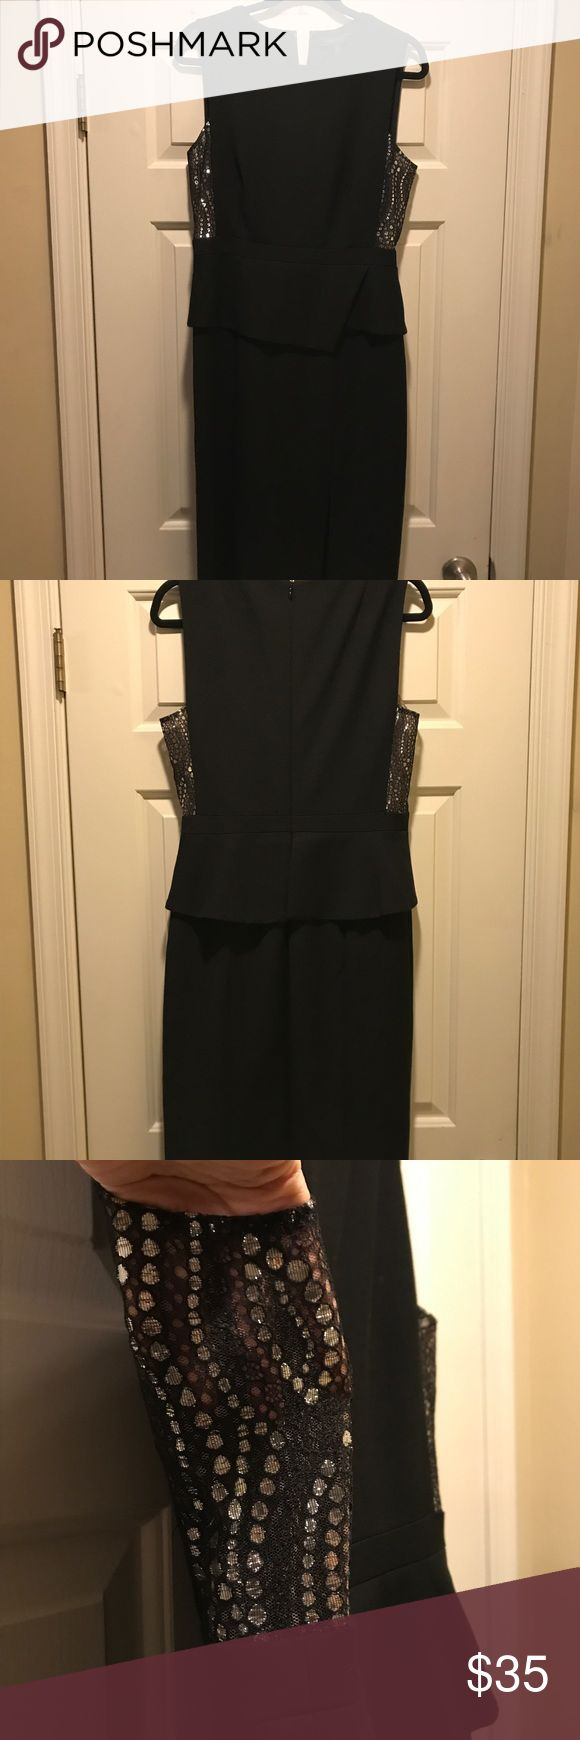 BCBG black peplum dress BCBG black peplum dress. This dress is stunning with sparkle lace on the sides that is slightly see through. Worn once. Size 8 but could fit a 10 depending on your size. BCBG Dresses Midi